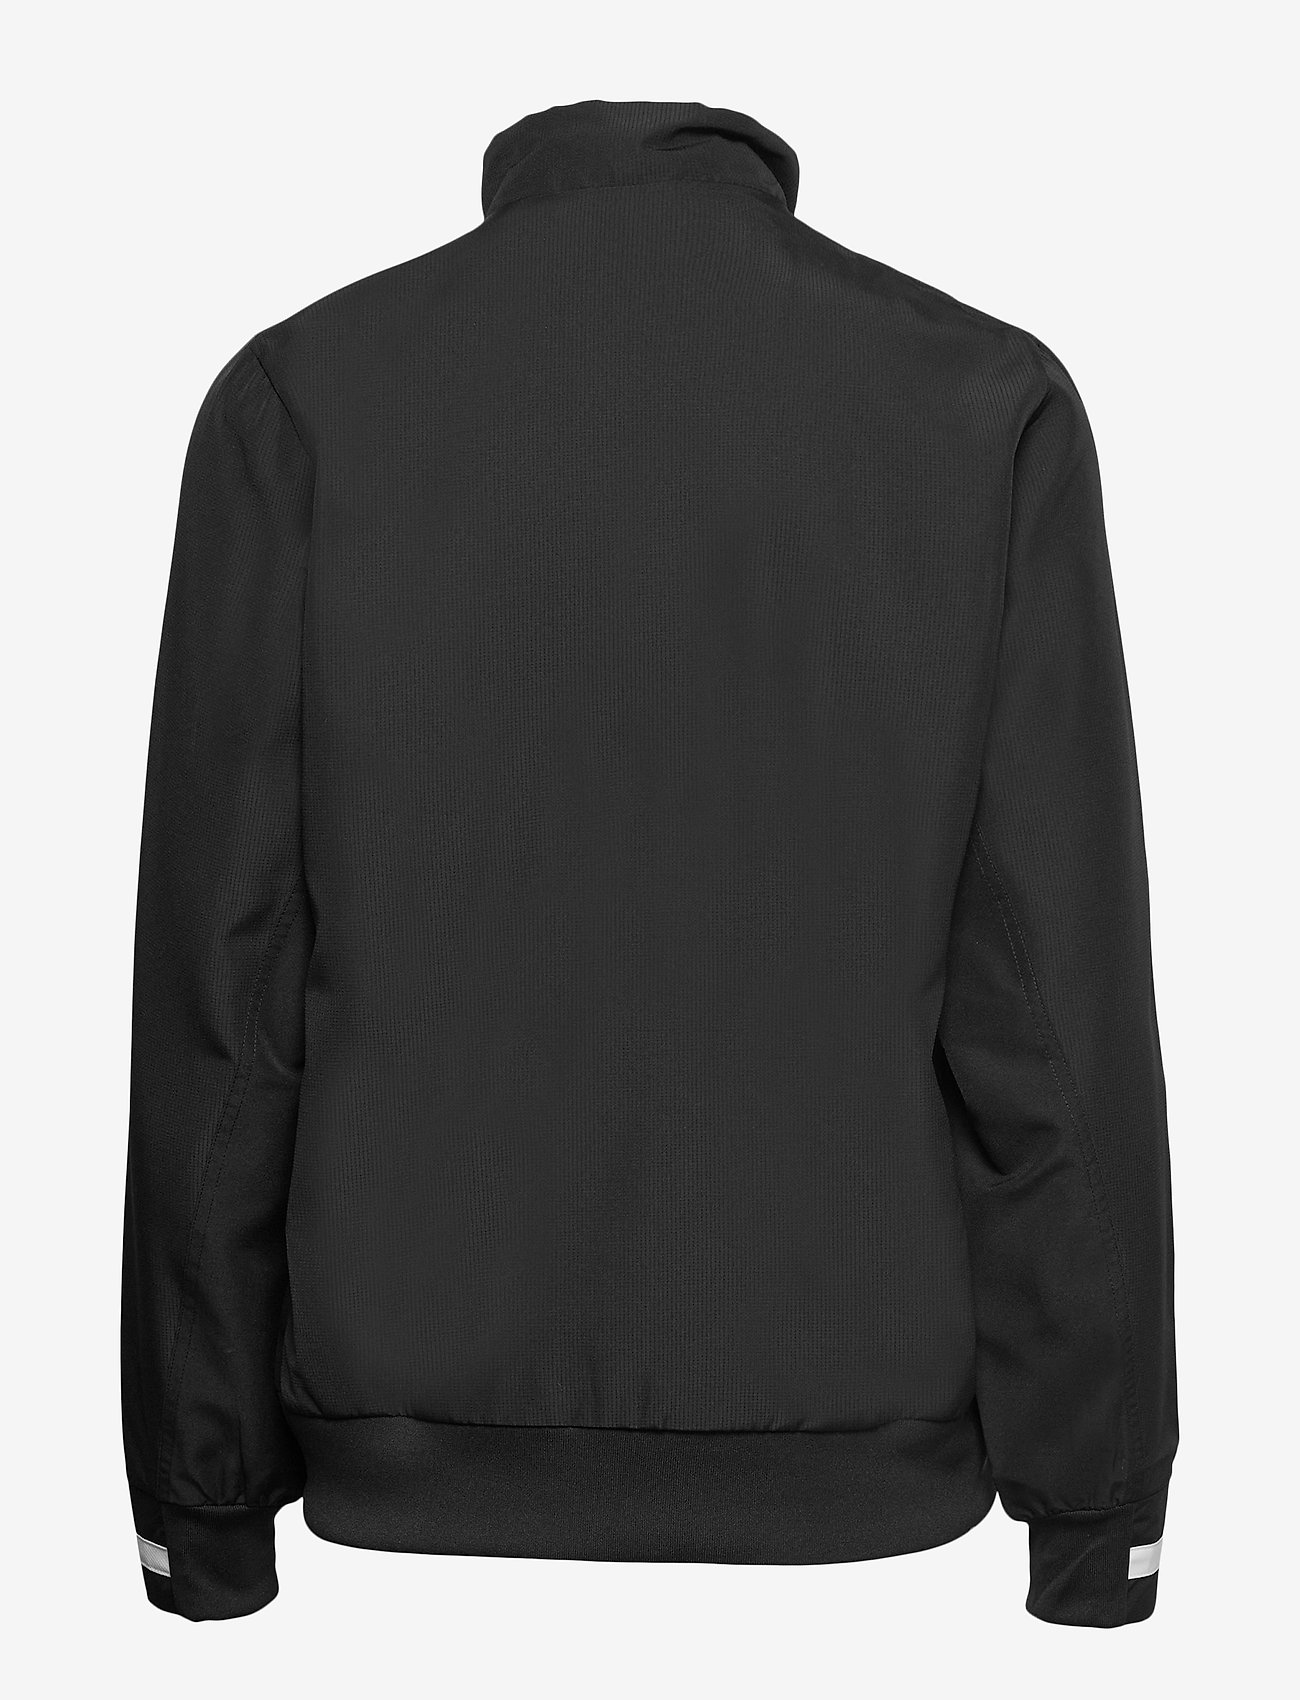 adidas Performance - Team 19 Woven Jacket W - sportjassen - black/white - 1